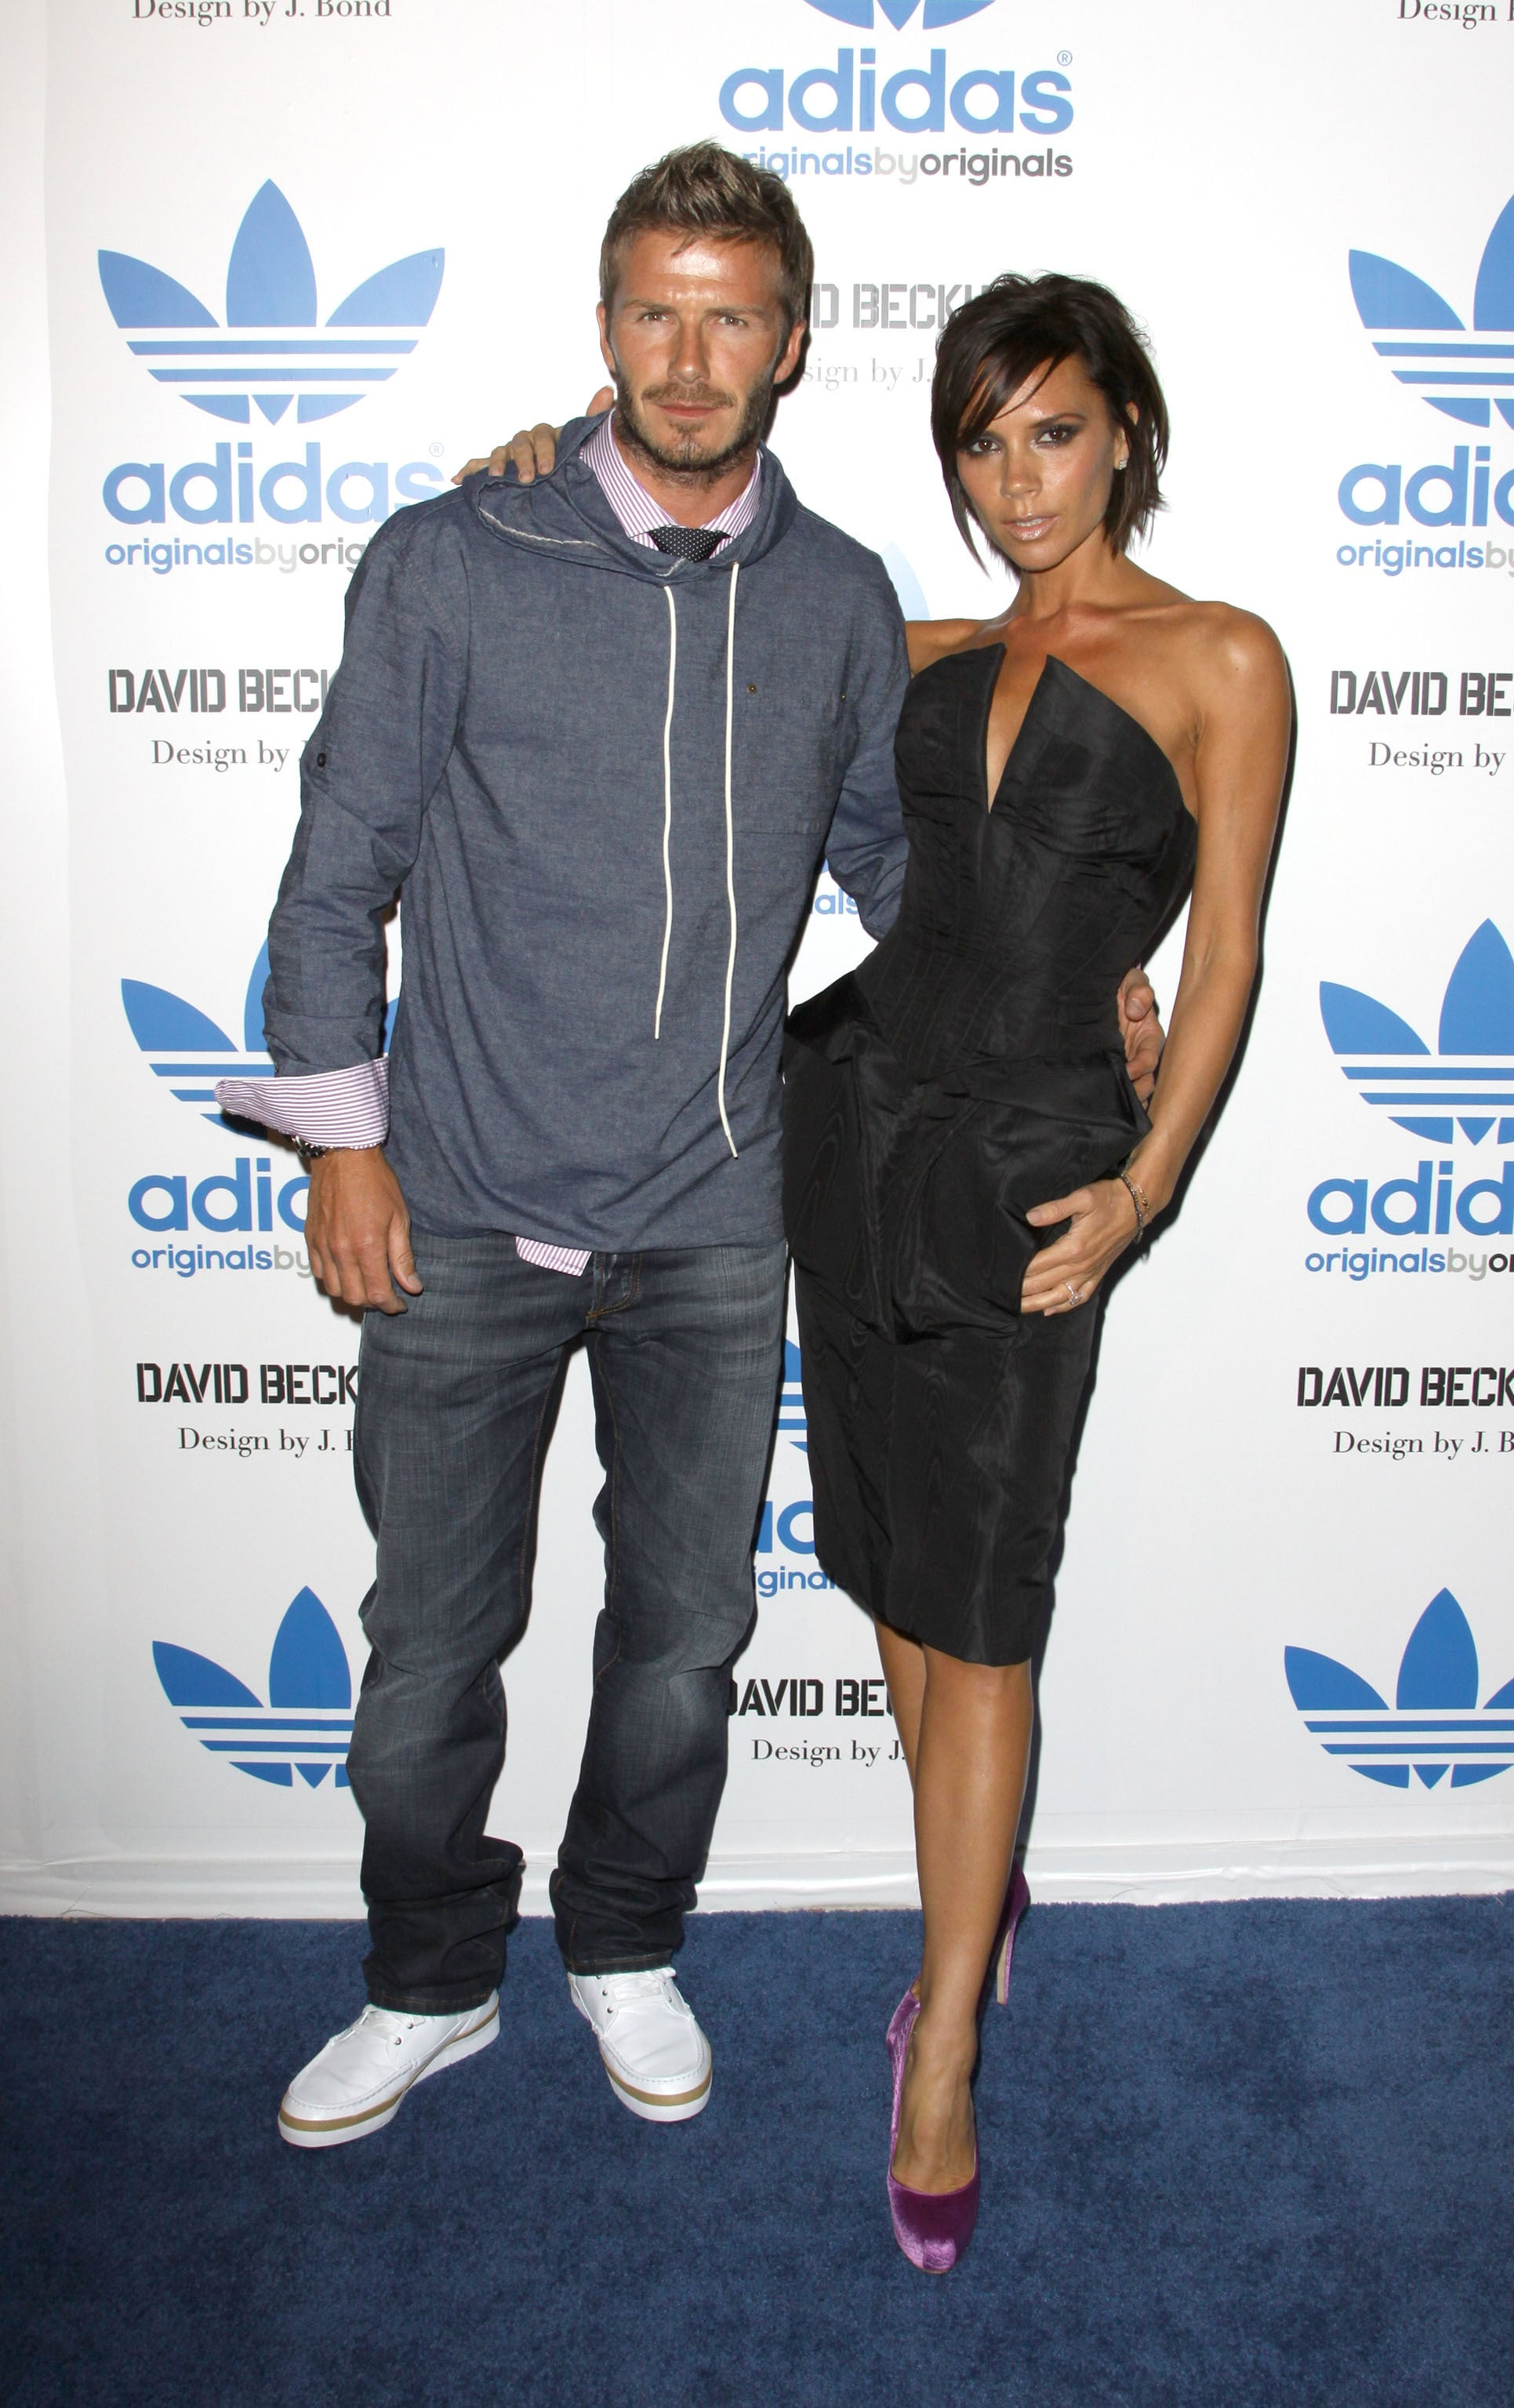 dosis Semejanza bruscamente  Photos of David Beckham and Victoria Beckham at Launch of Adidas Originals  as Reports Suggest They're Taking Elocution Lessons | POPSUGAR Celebrity UK